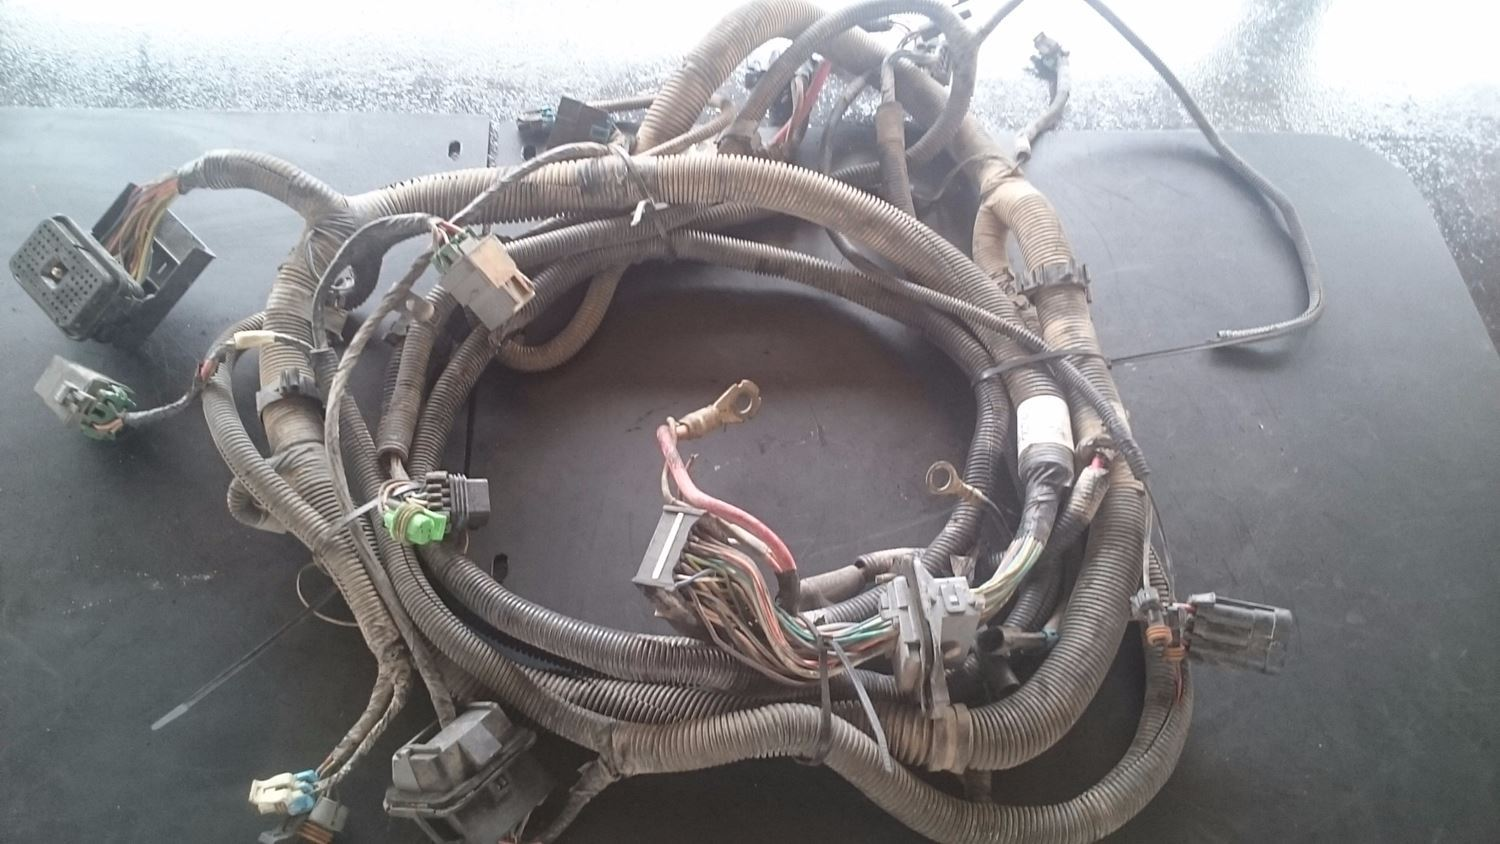 WIRING HARNESS FROM ENGINE TO CABIN FOR A CATERPILLER ENGINE.